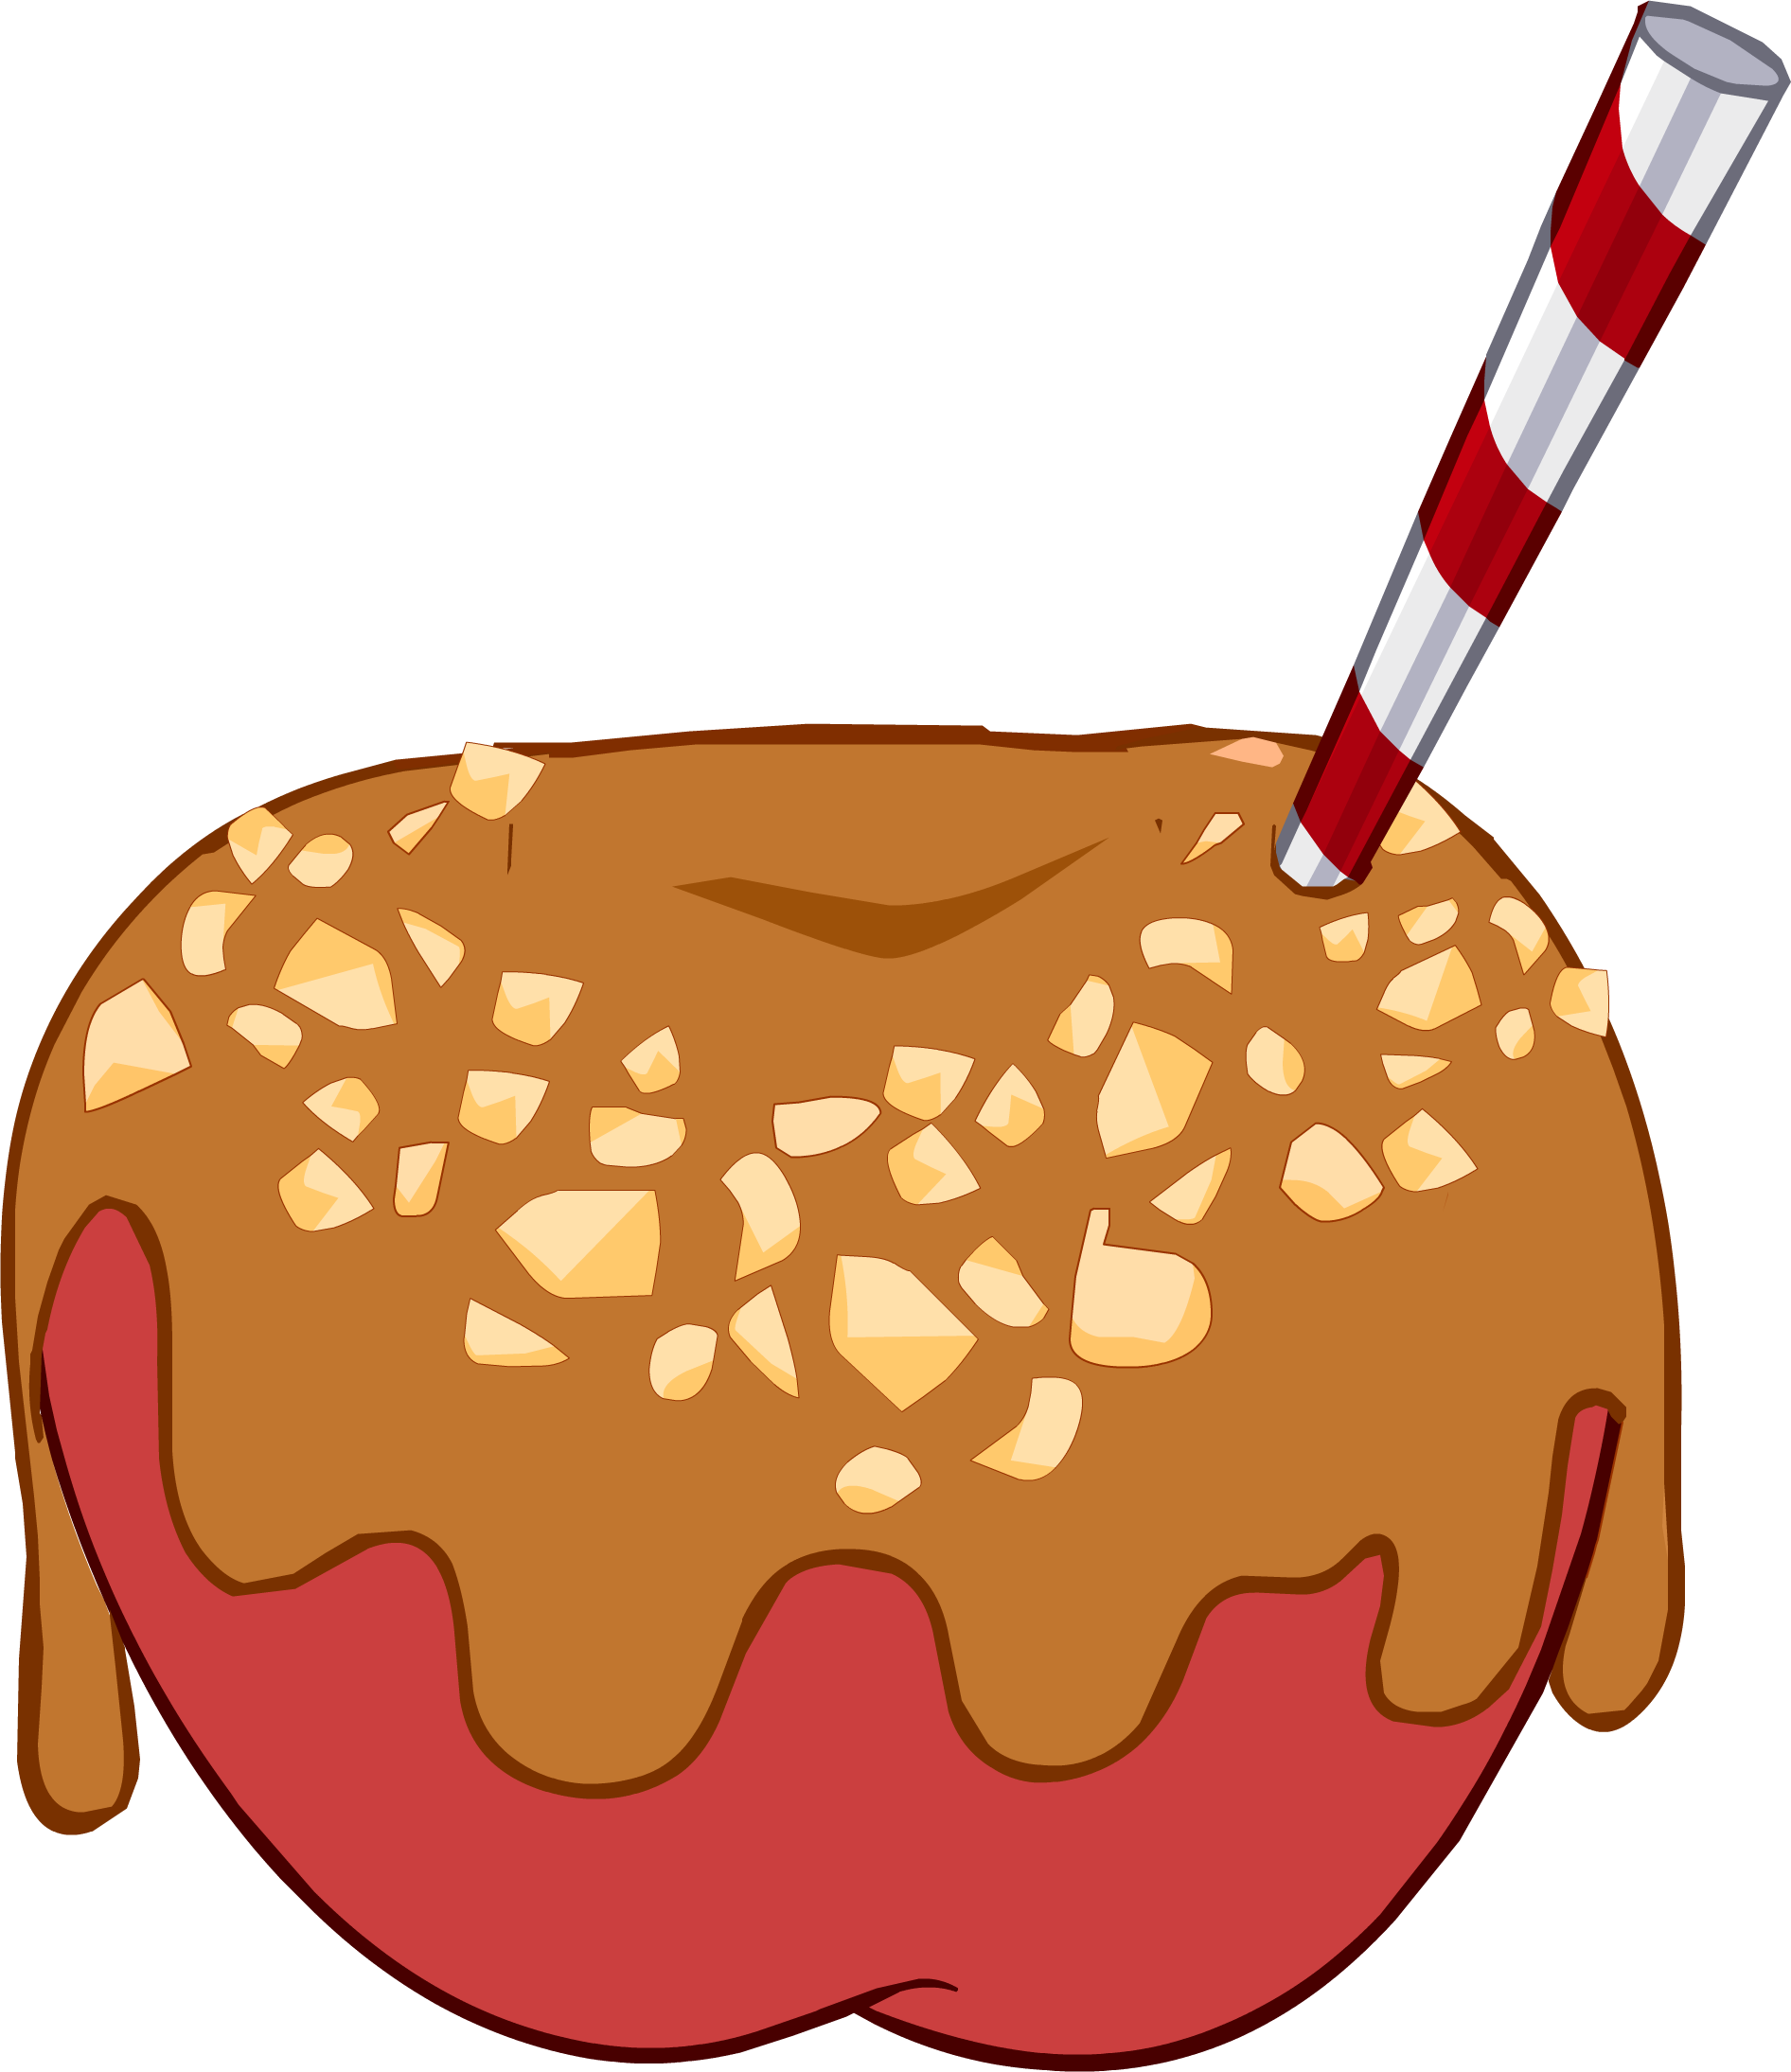 Candied apples png. Image caramel apple costume